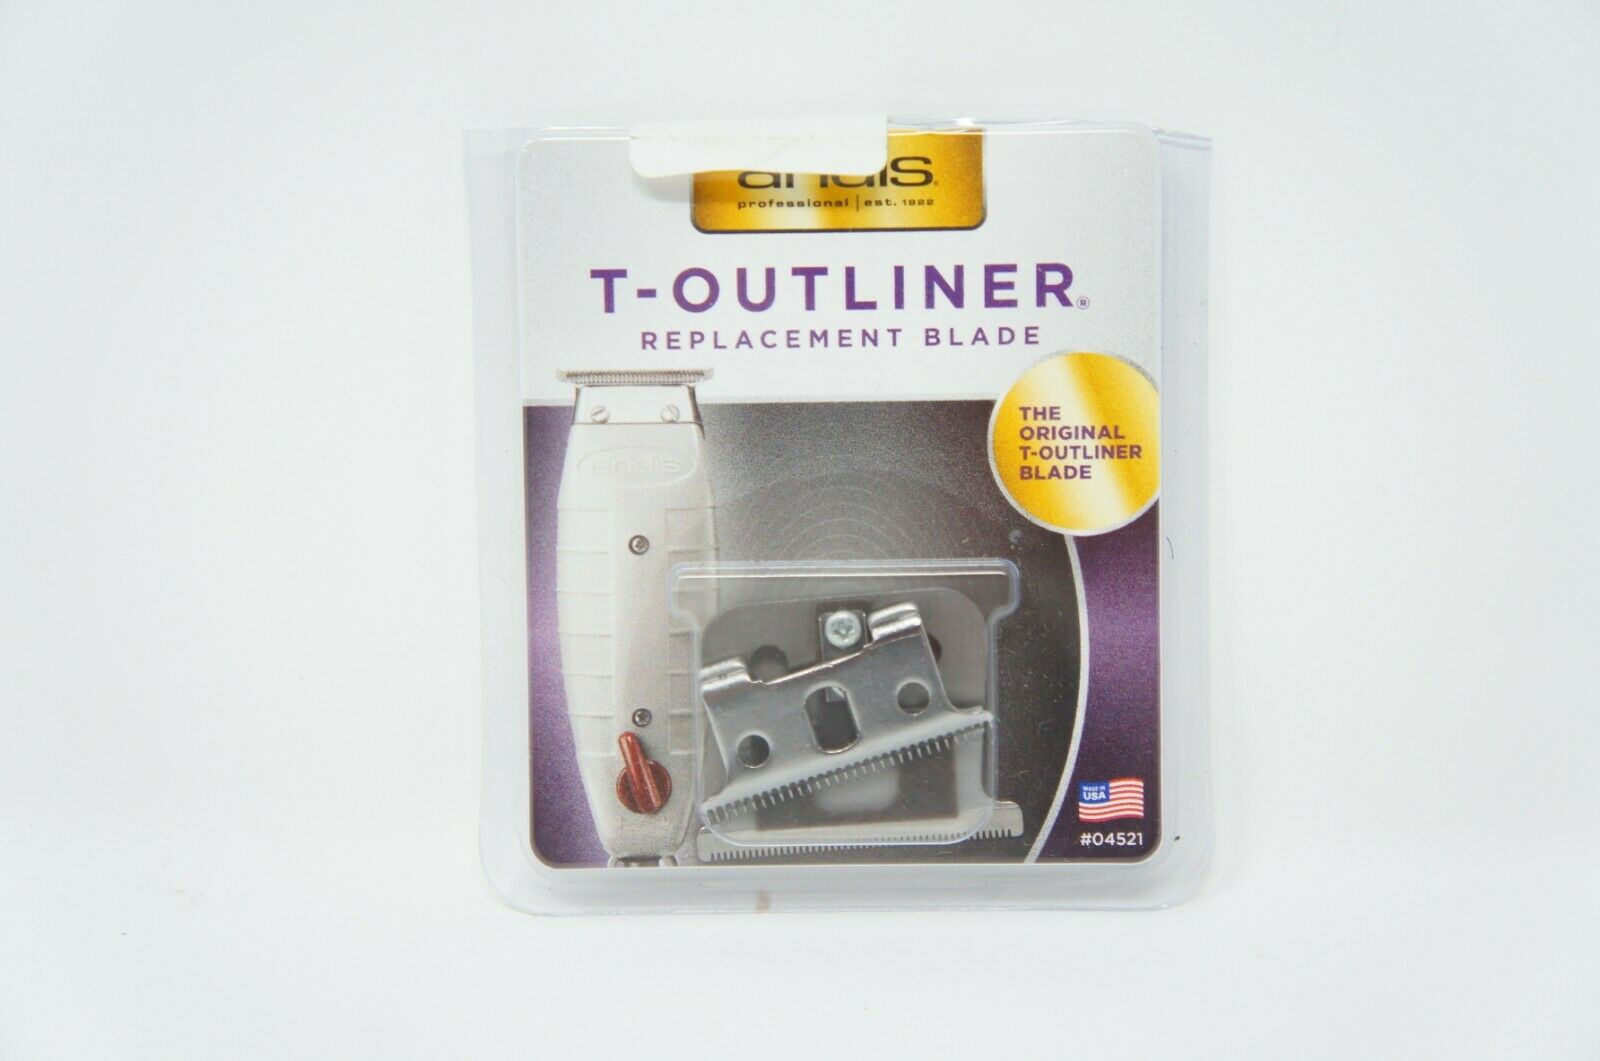 Andis T-Outliner Replacement Beard/Hair Trimmer Blade Silver 04521